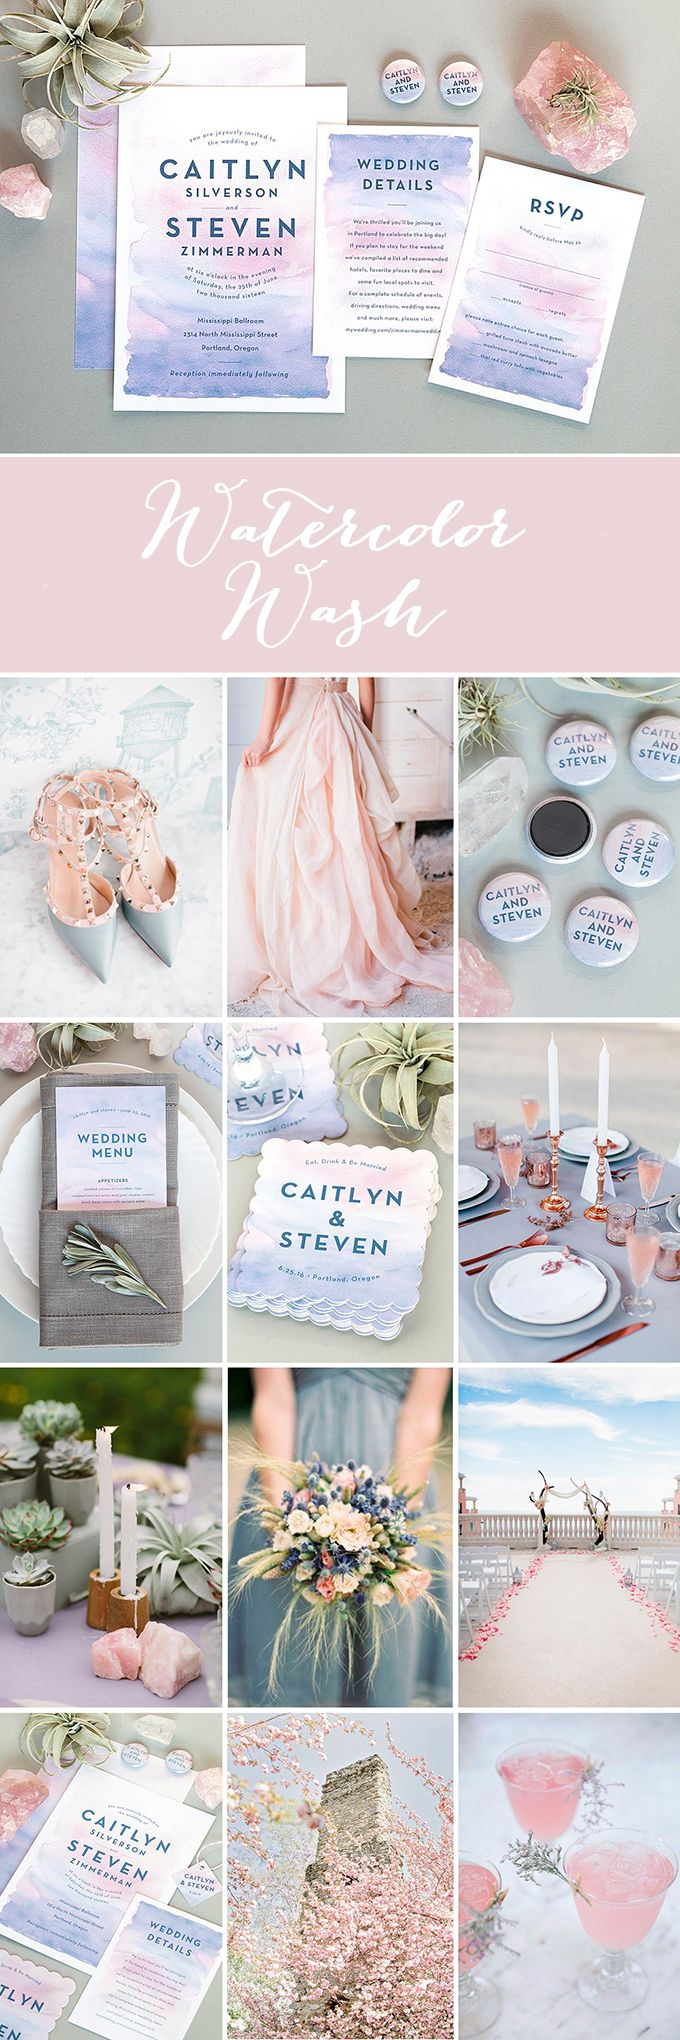 Wedding Inspiration: Watercolor Wash in Rose Quartz and Serenity